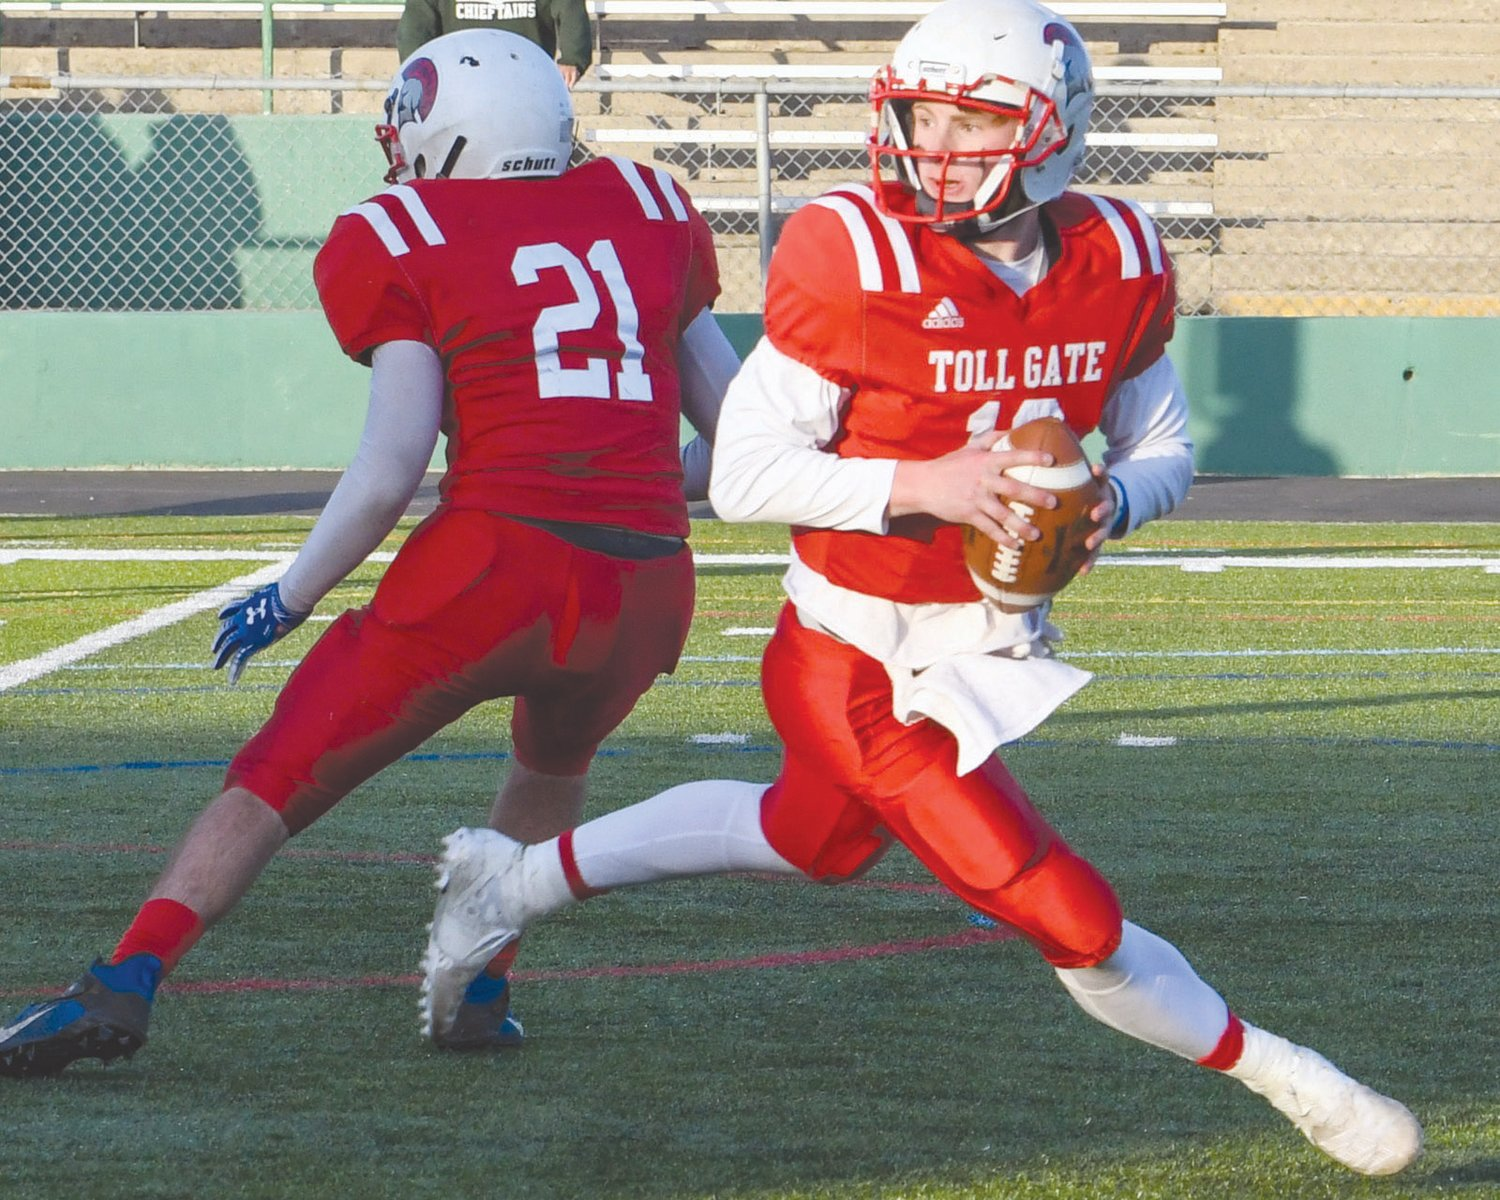 ROLLING OUT: Toll Gate senior quarterback Greyson Pasquina rolls out to pass against Ponaganset last weekend at Cranston Stadium. The visiting Chieftains would shut out the Titans 33-0, who fell to 1-1 with the loss. Toll Gate will be squaring off against Davies this weekend.